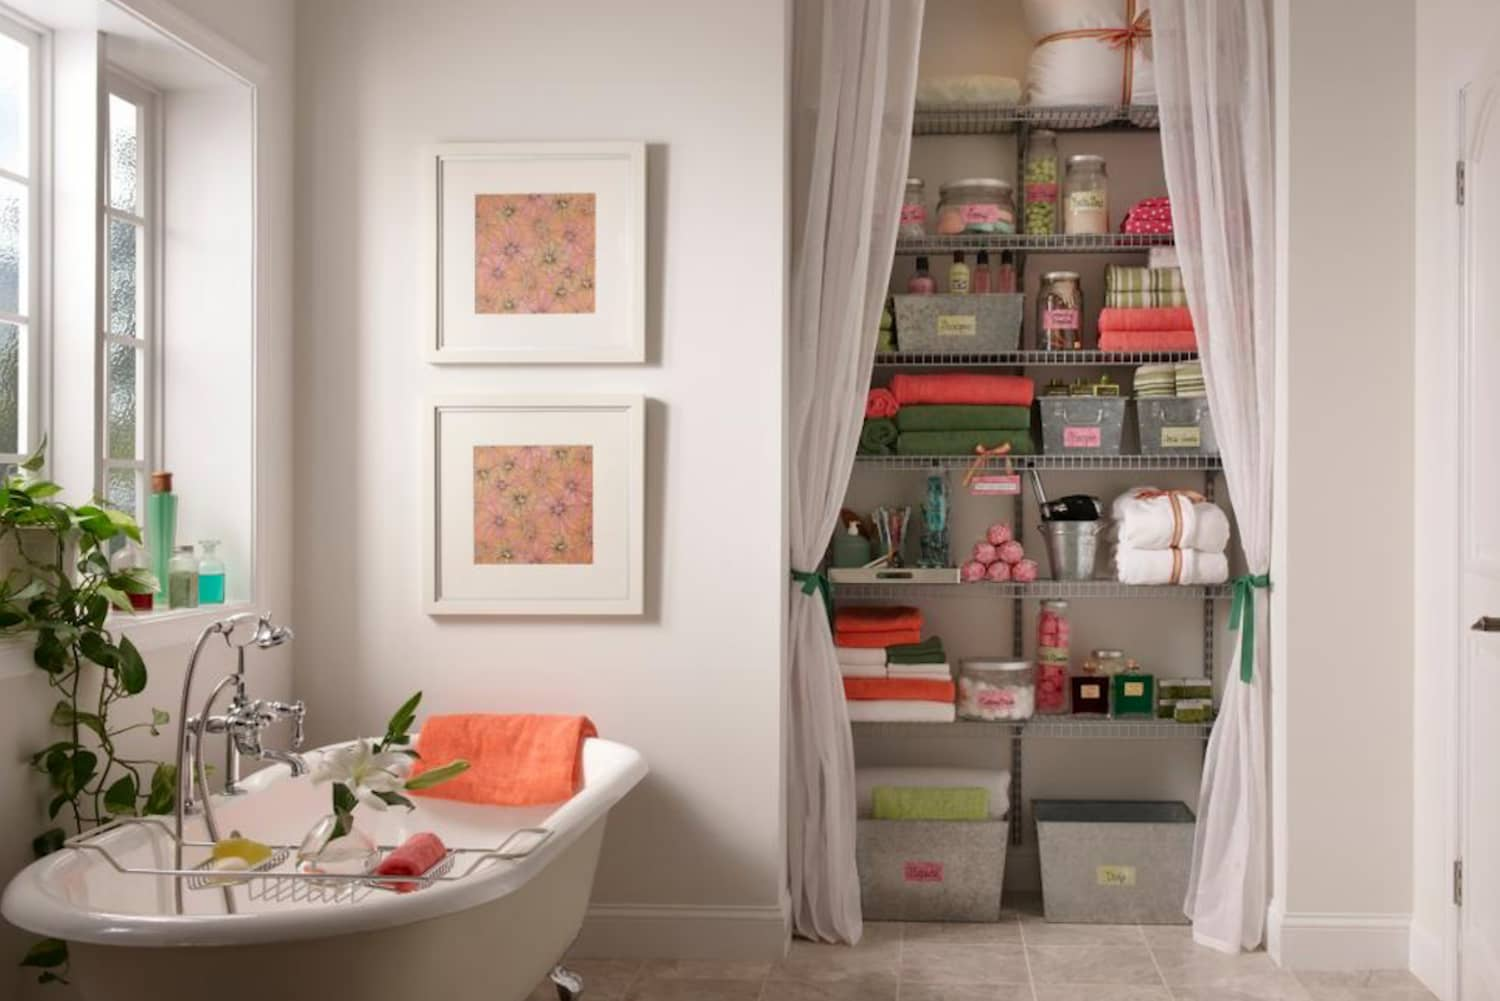 Project Ideas For Hiding Clutter With Curtains & Shades